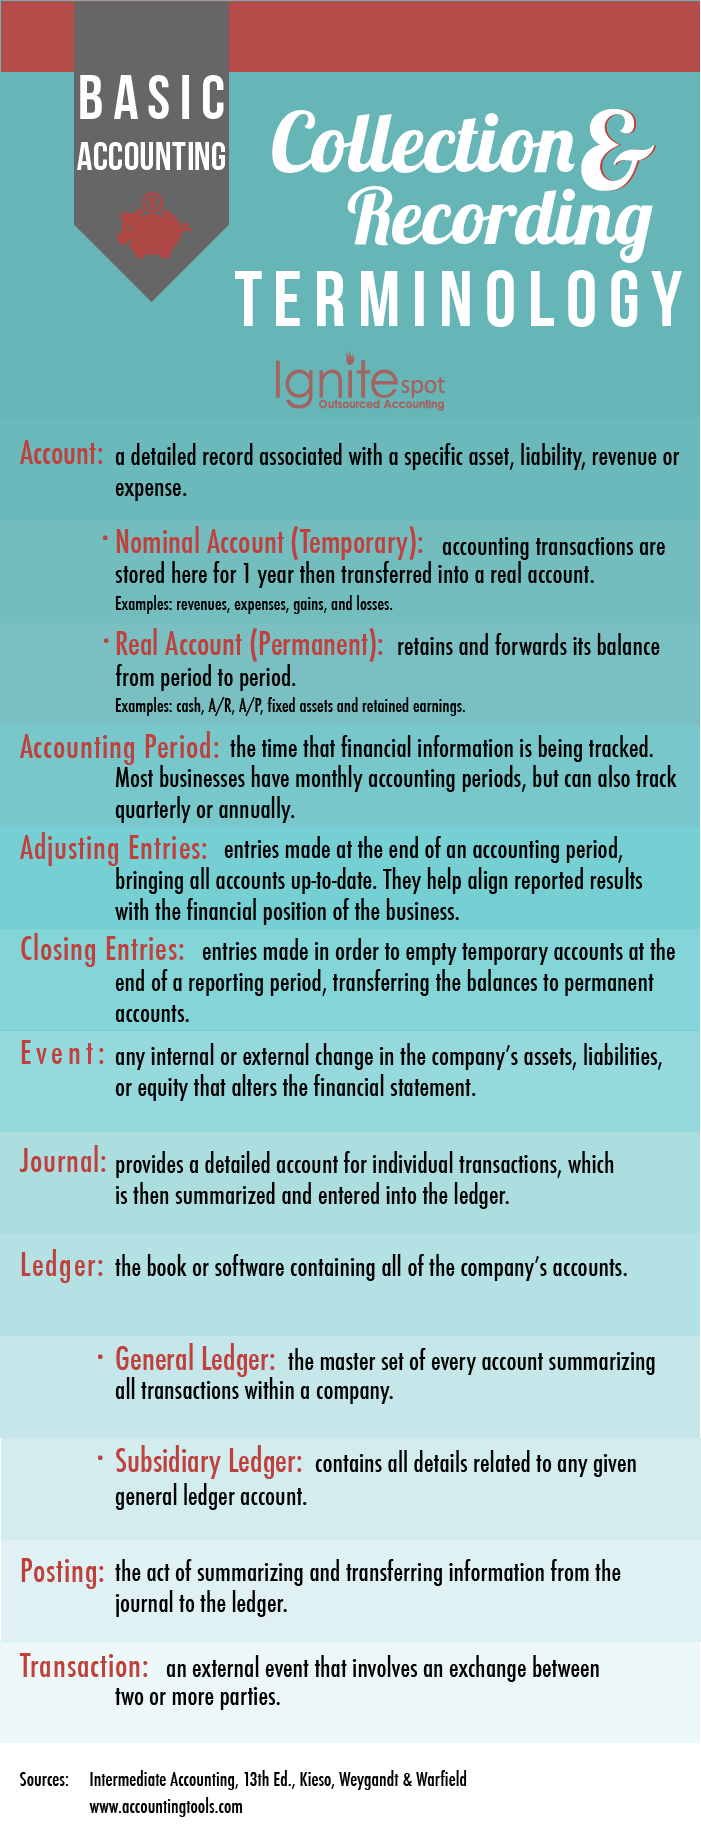 basic_accounting_terms_collecting_and_recording-1